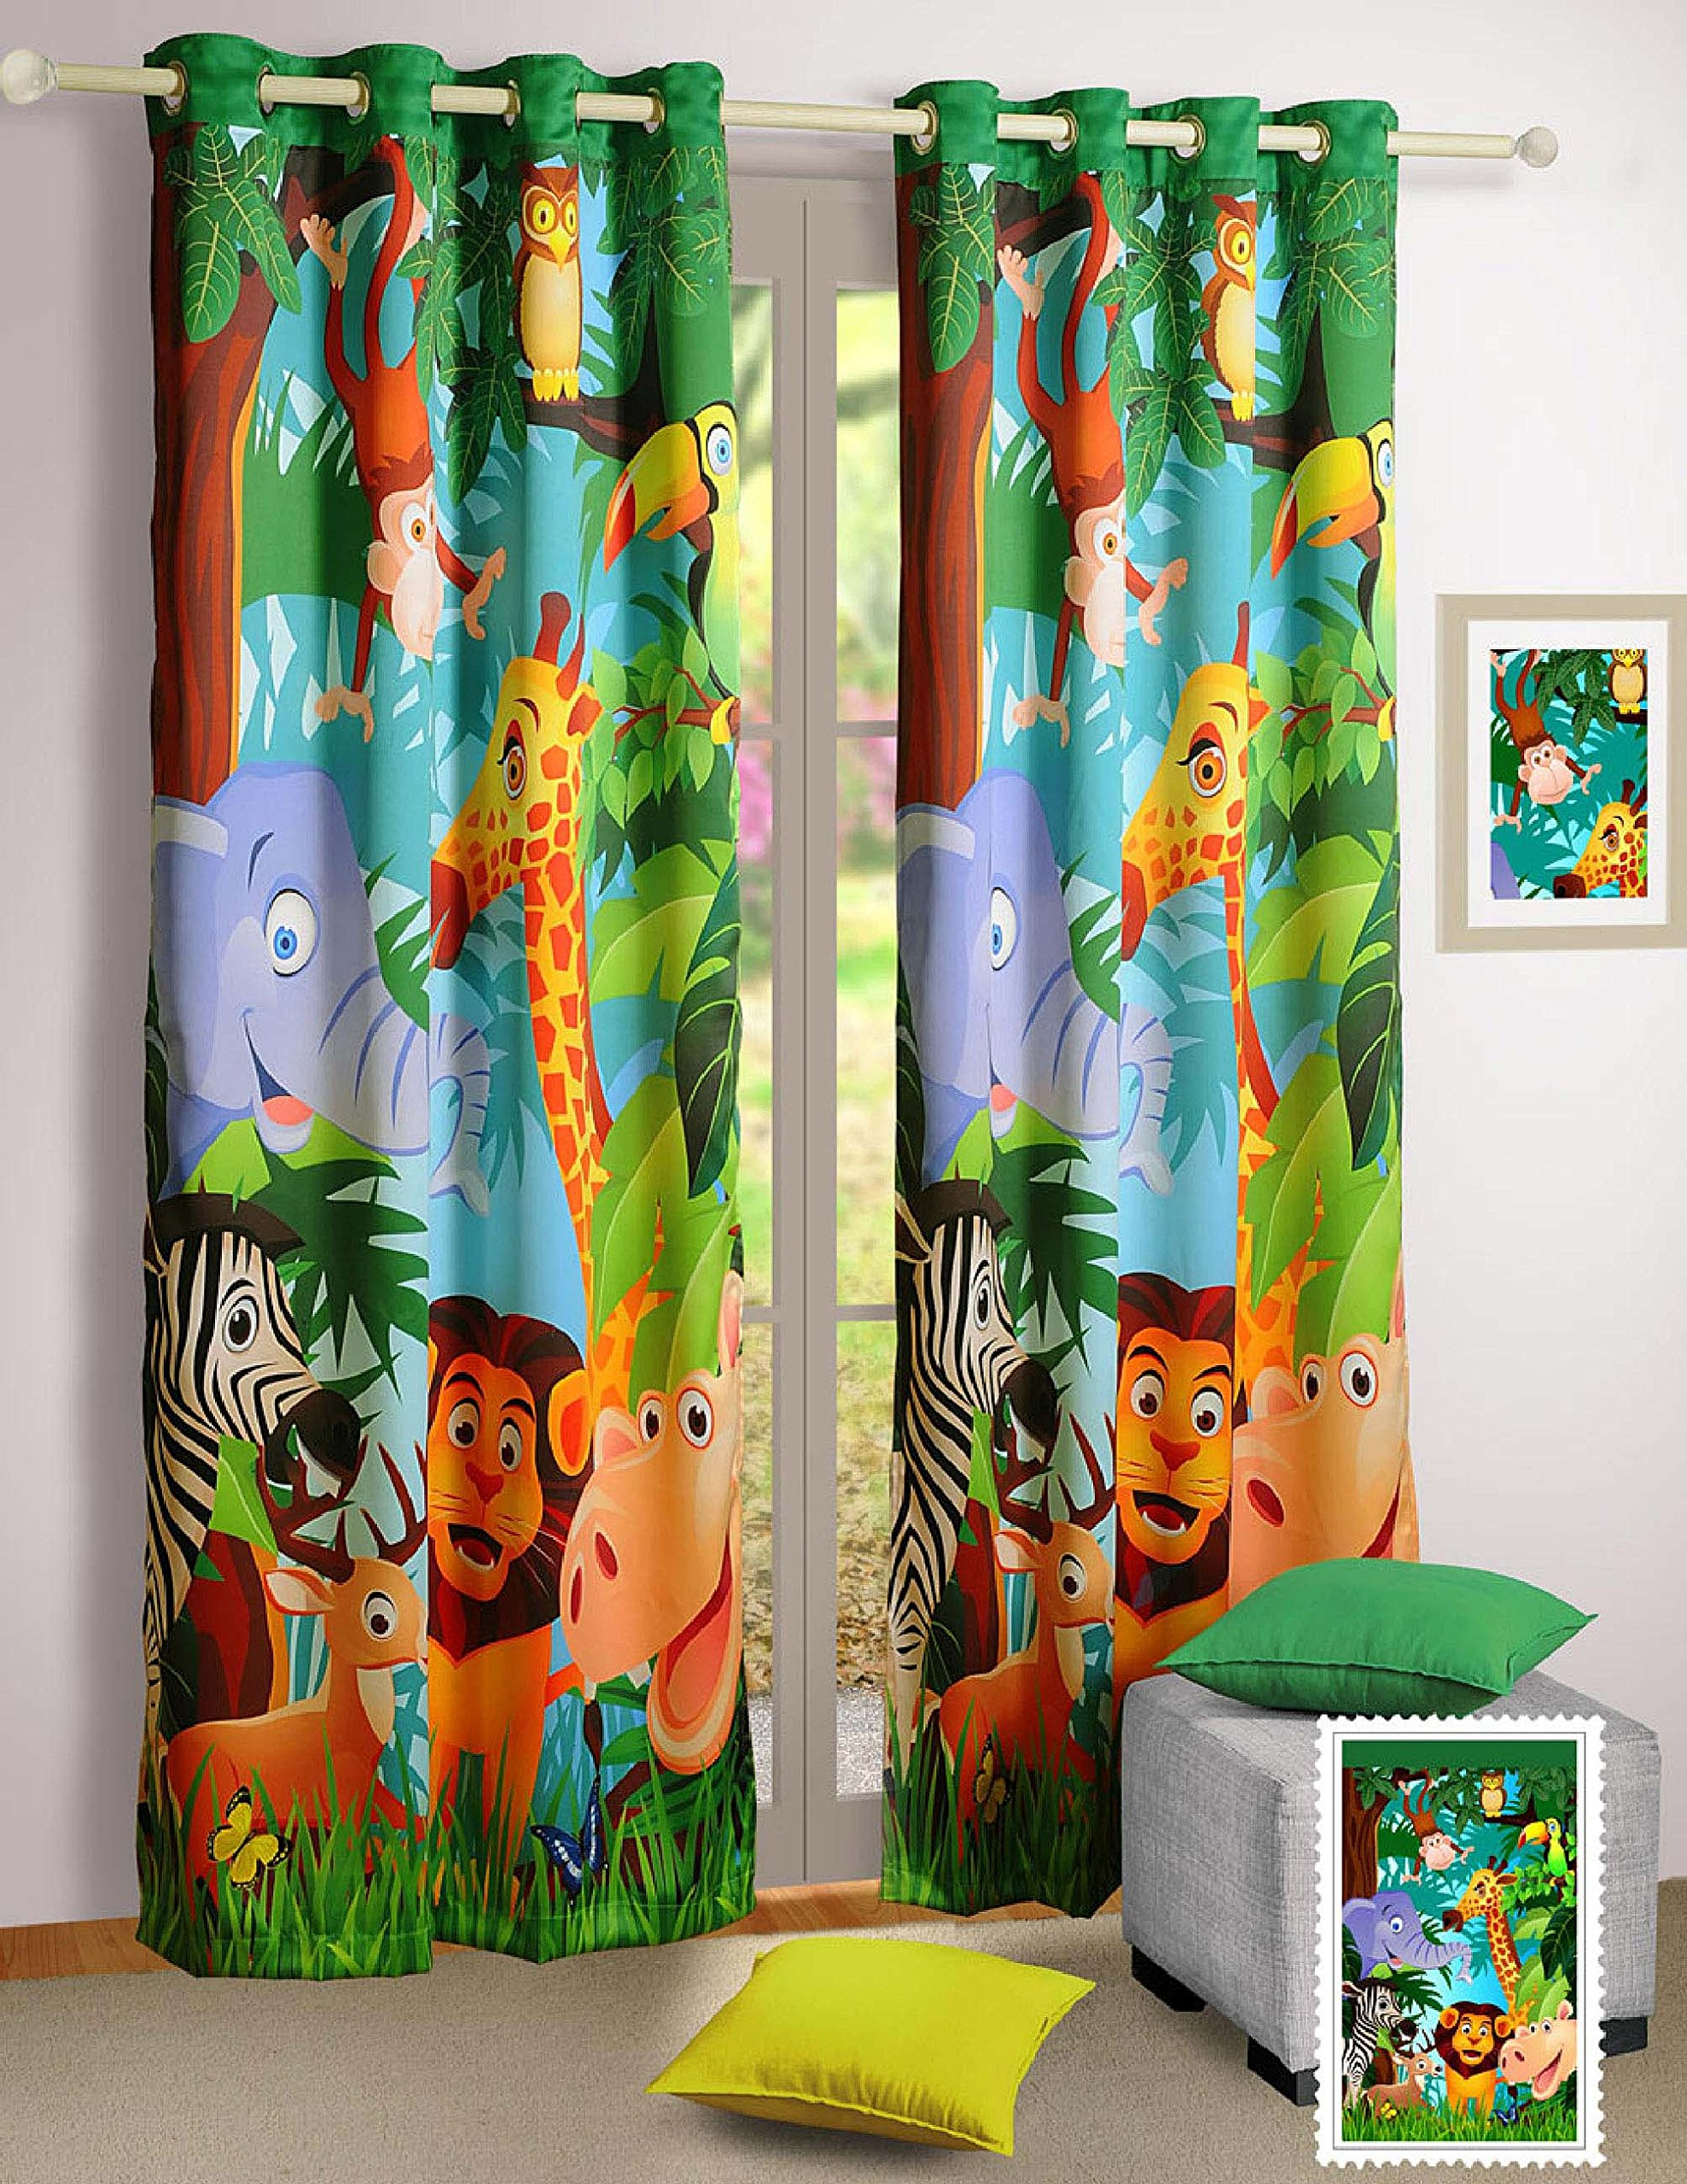 Blackout Poly Satin Fabric Jungle Animals Window Curtains - Set of 2 Curtain Panels for a Baby Nursery or Toddler or Kids Bedroom - 48'' x 60'' panels